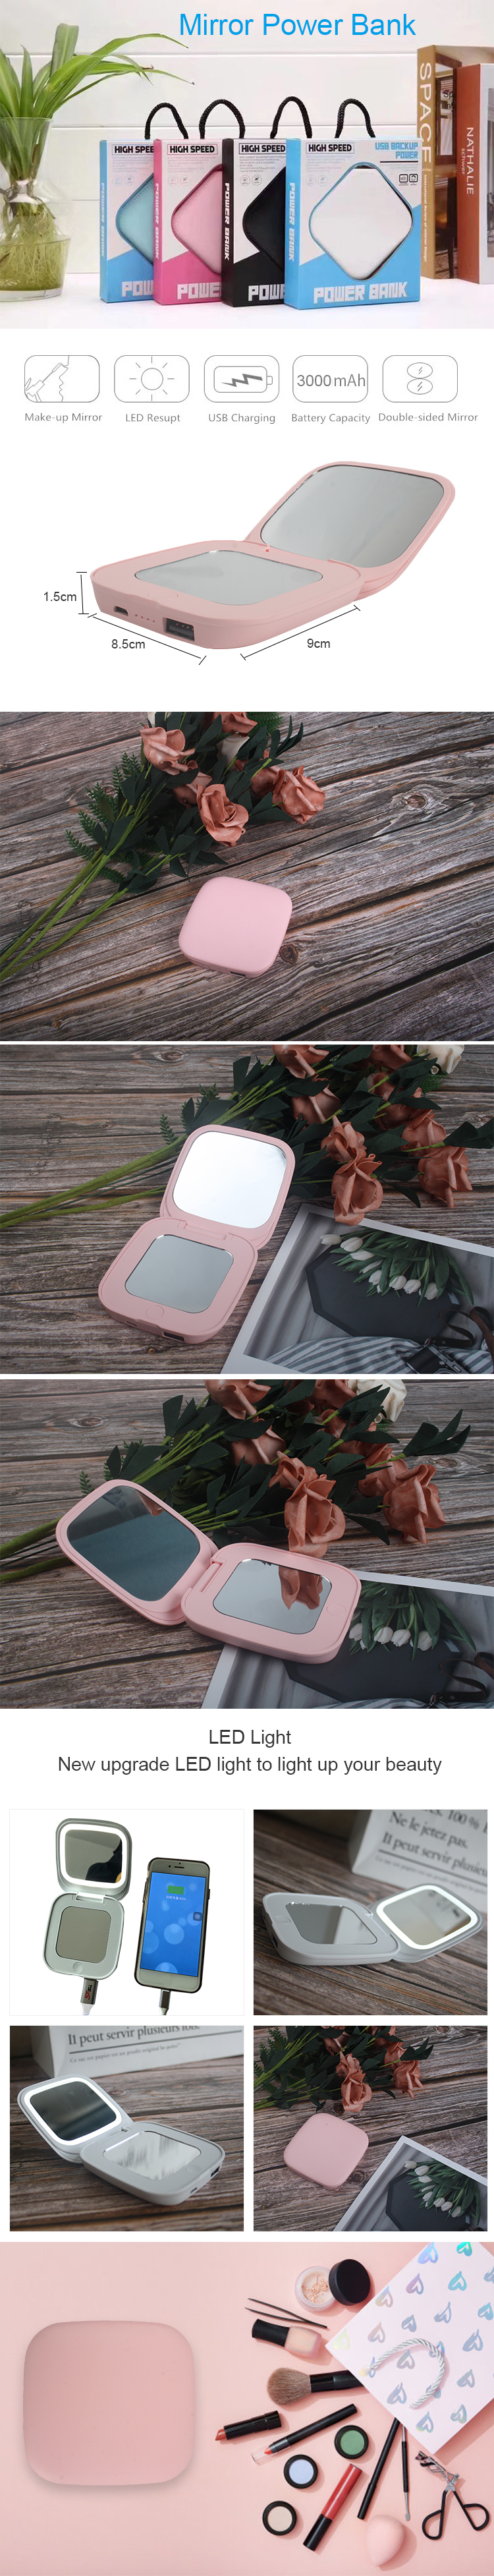 LED Light Makeup Mirror Power Bank